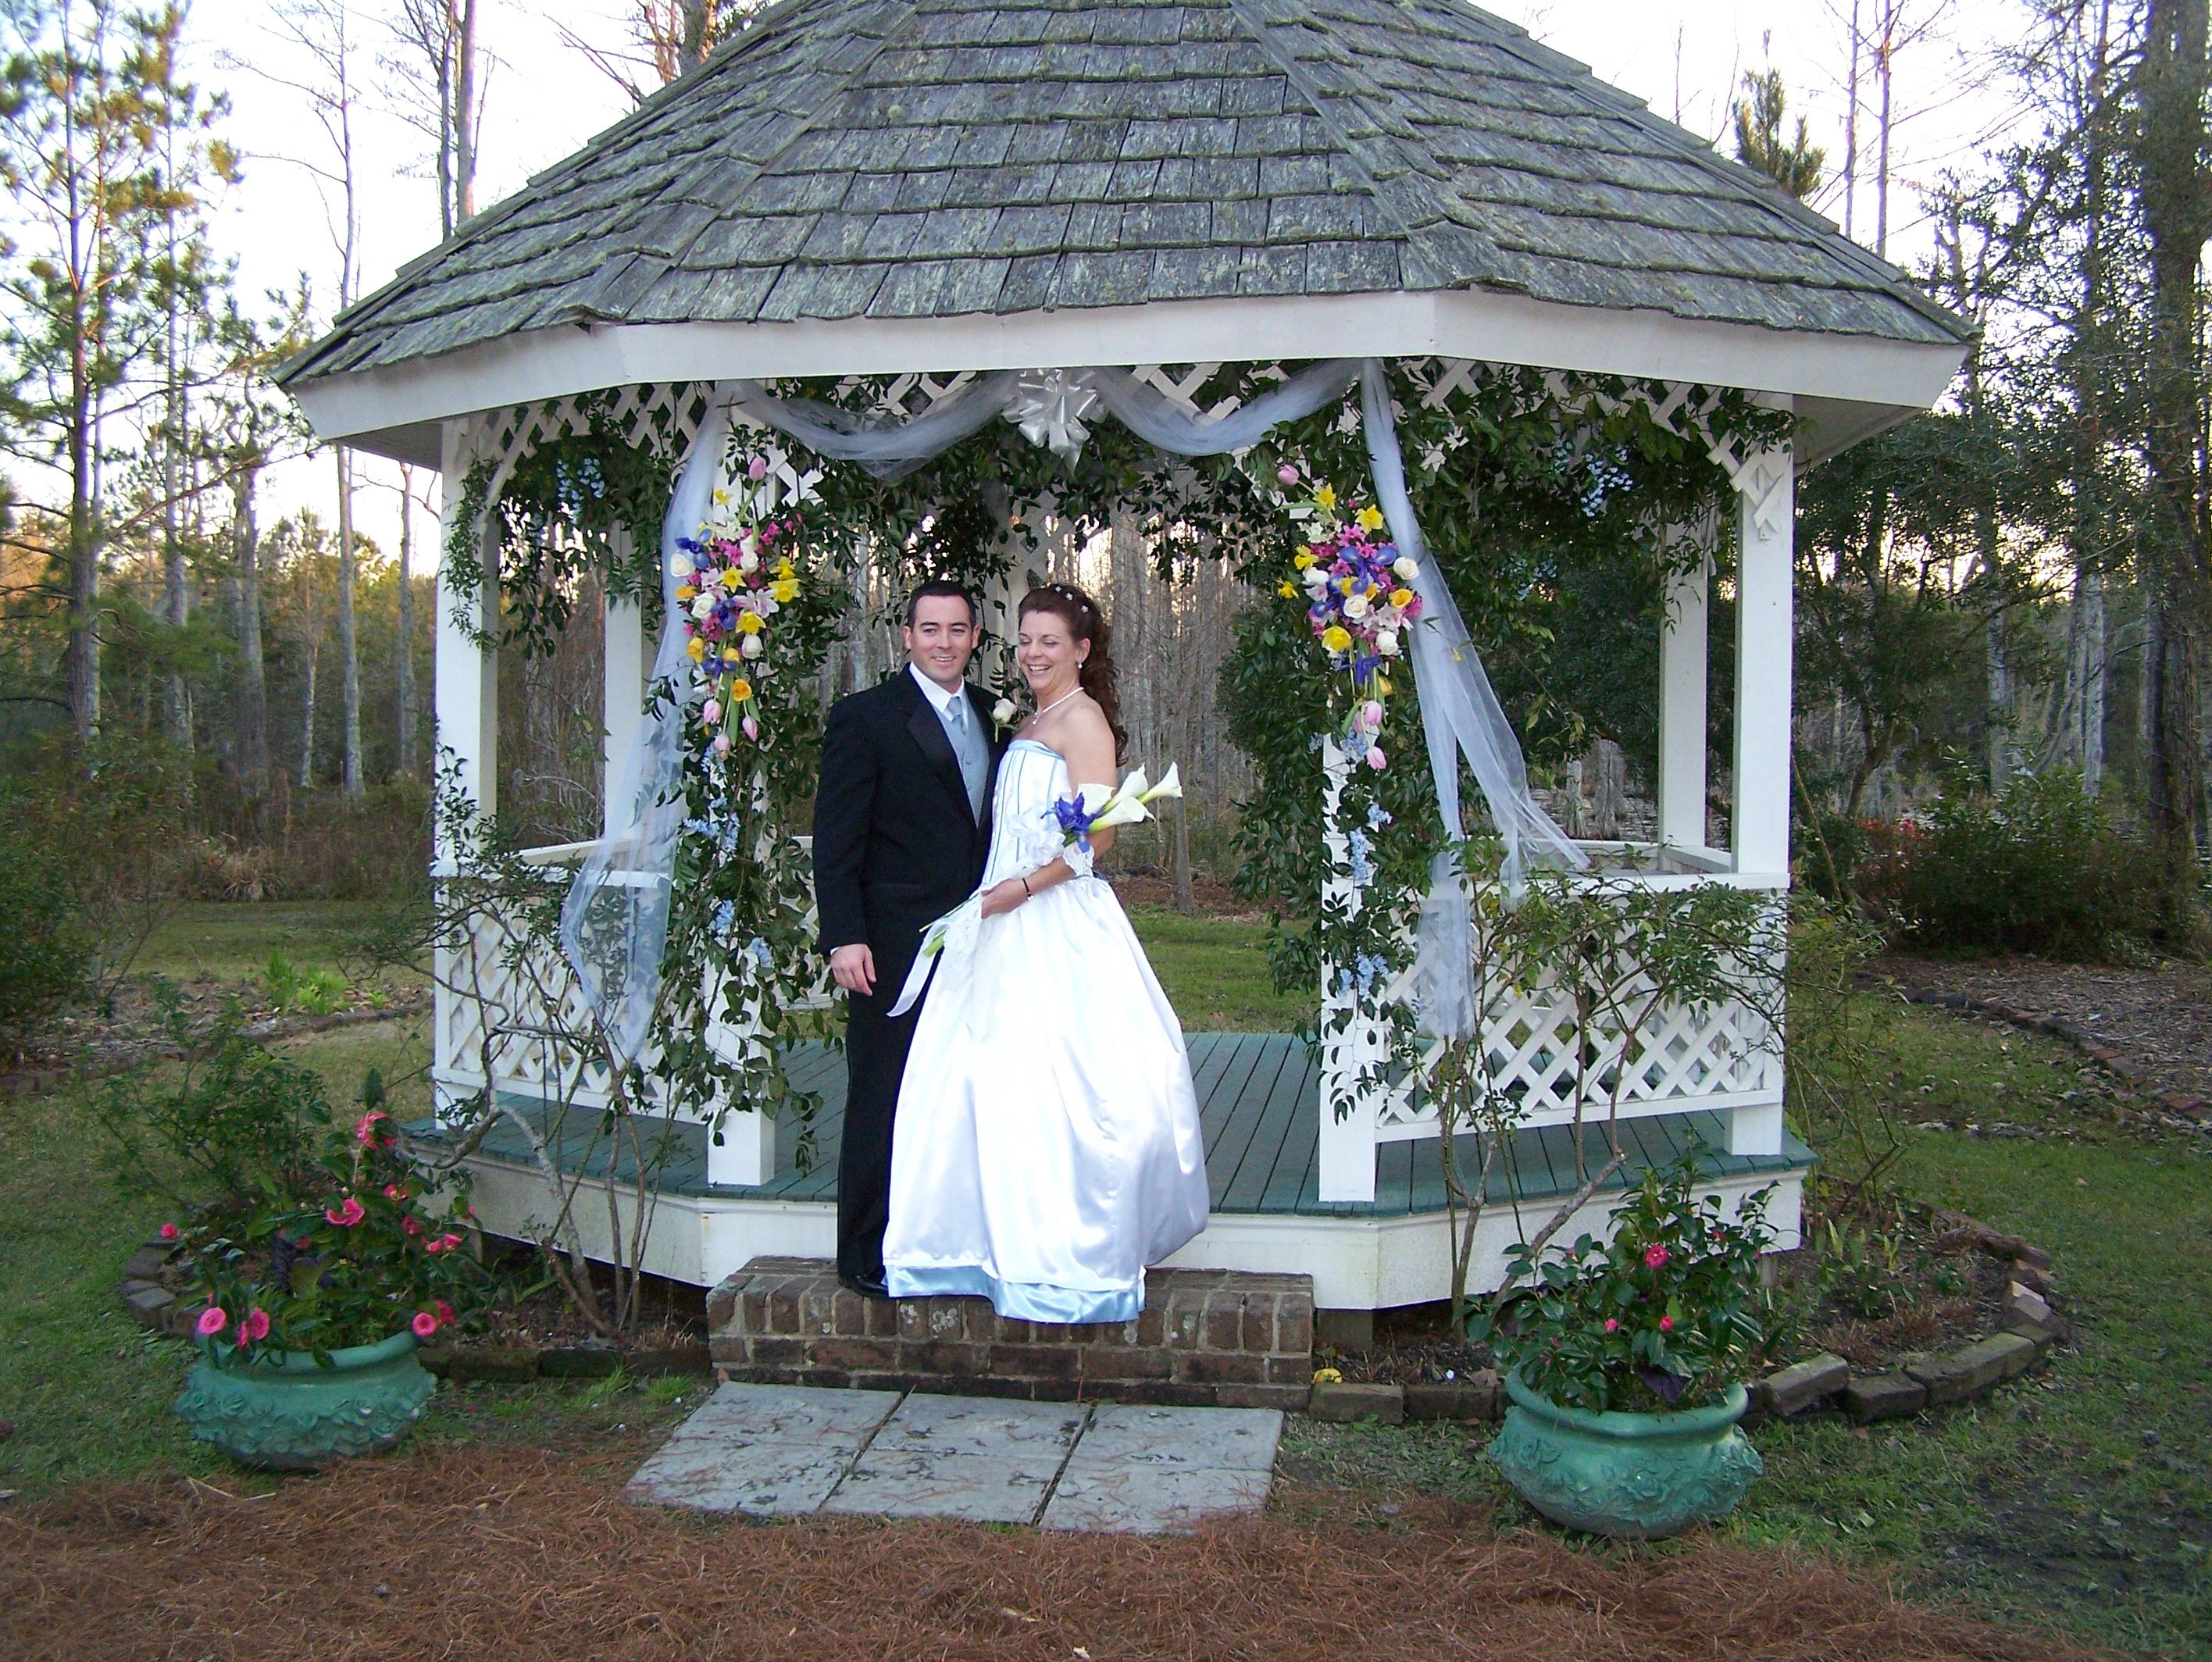 This Is The Gazebo At Ceremony Site Cypress Gardens